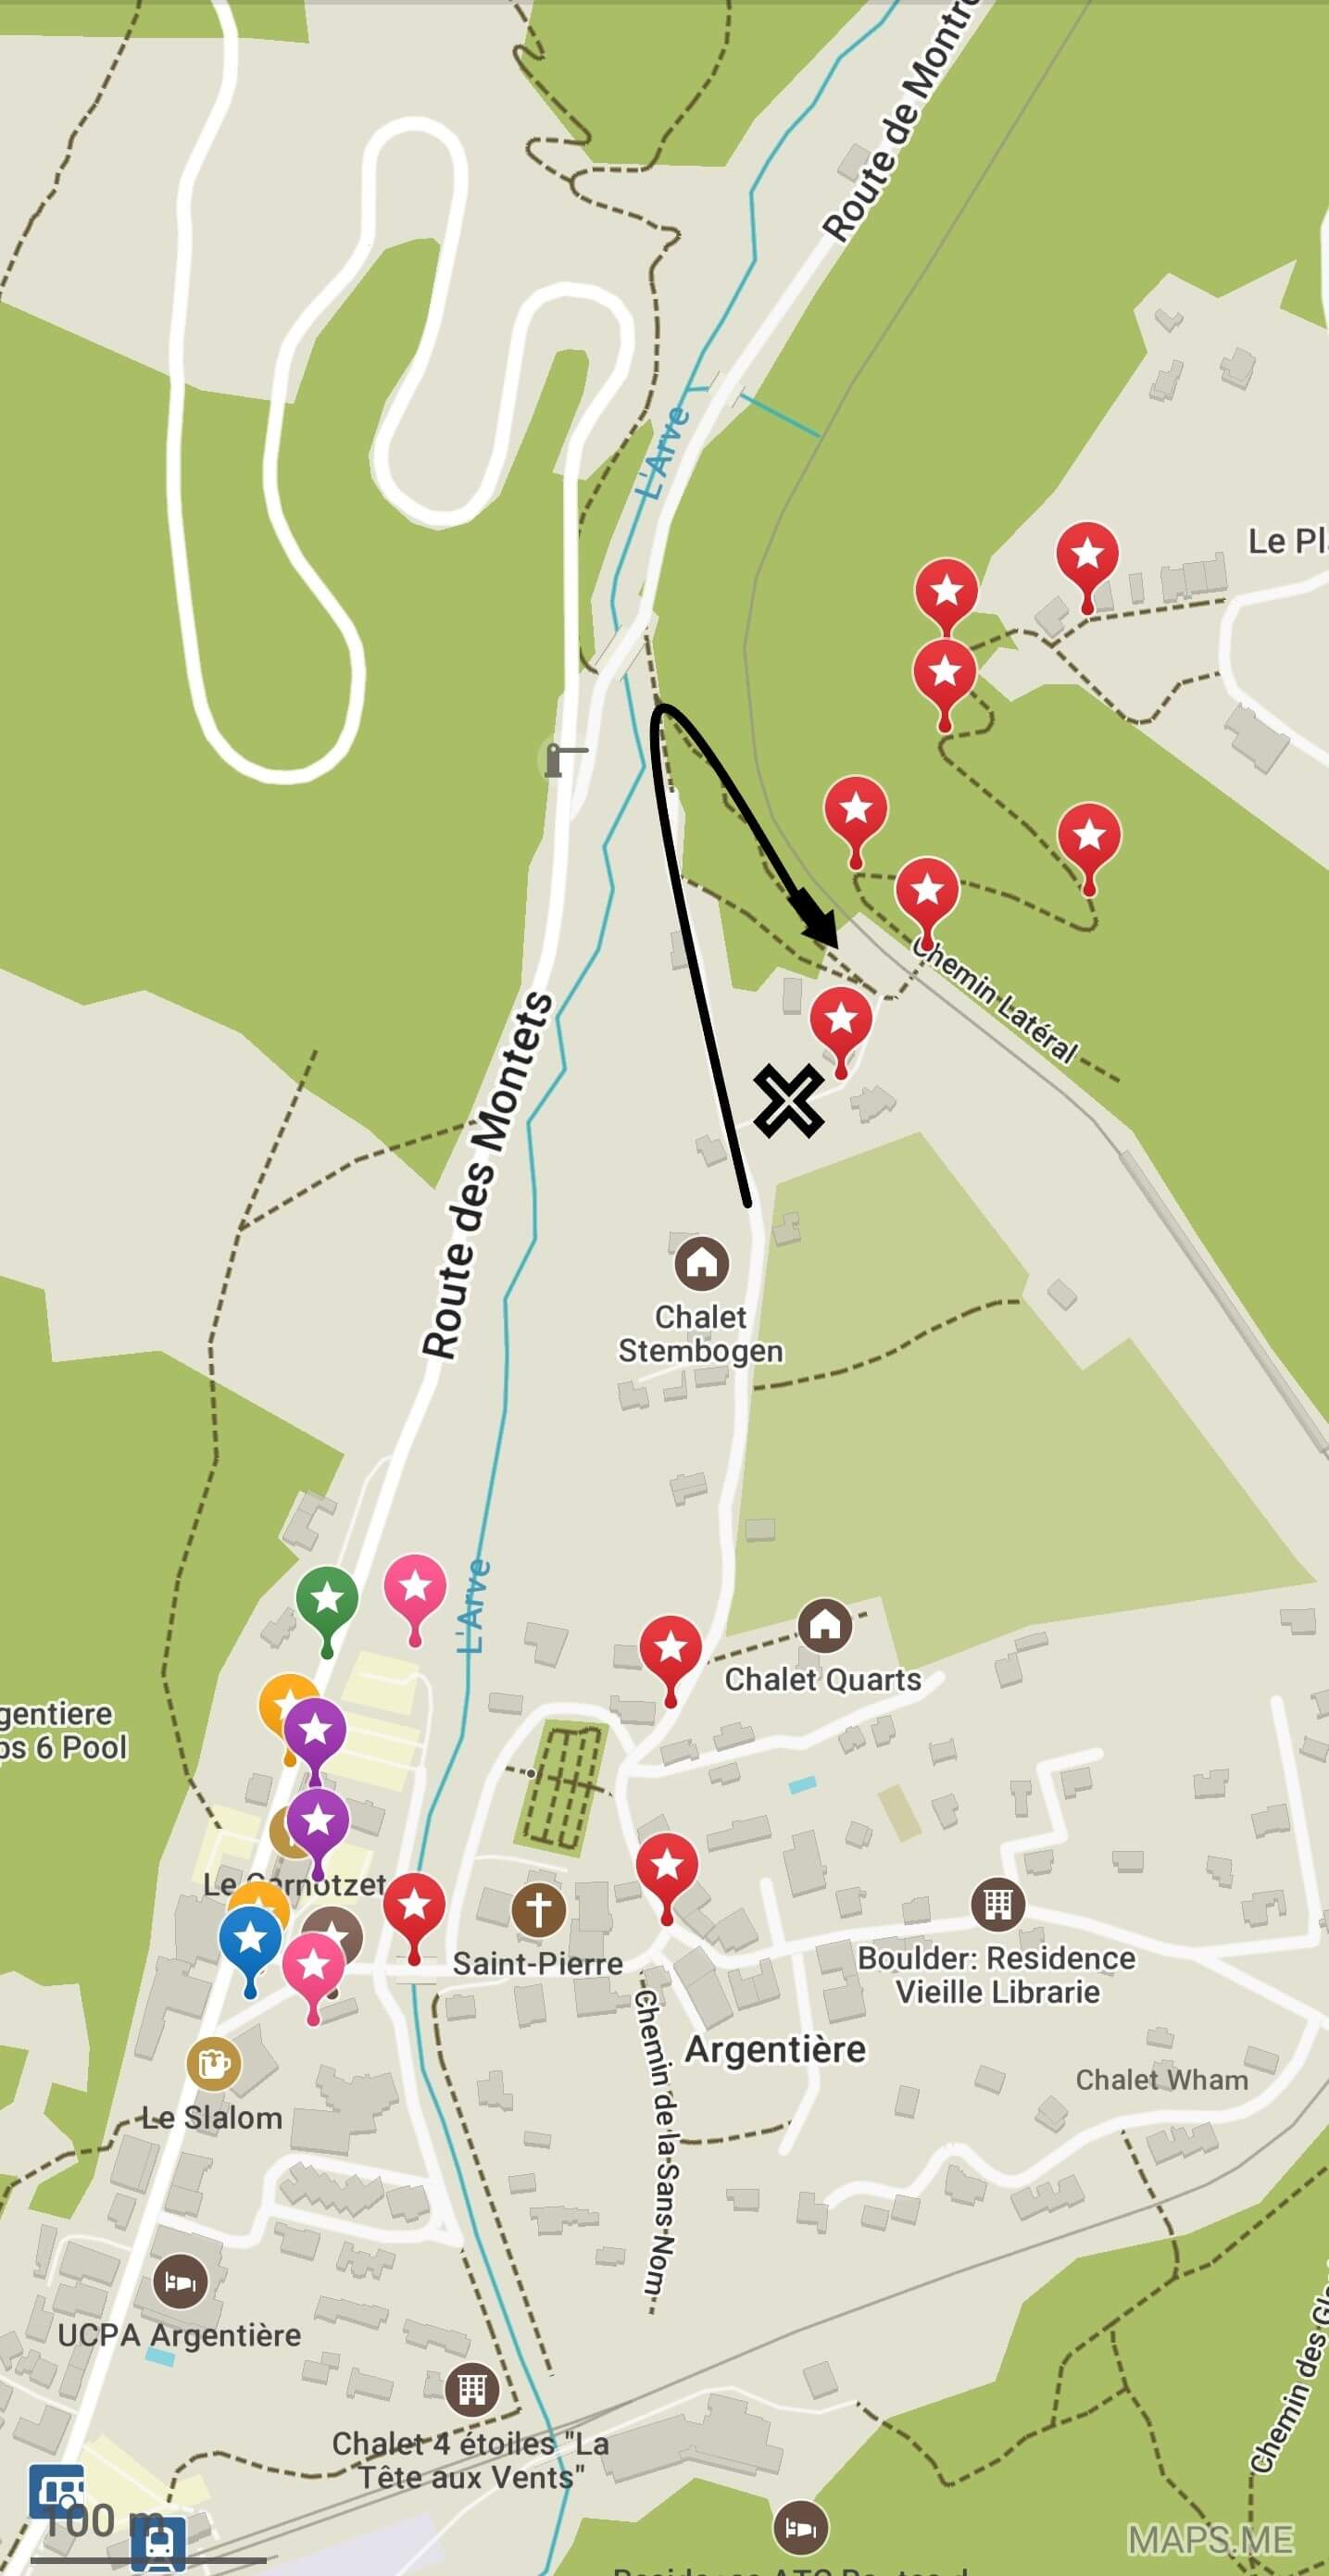 Minor detour after Argentiere:  Go around the garden by continuing a hundred feet further to the trail junction